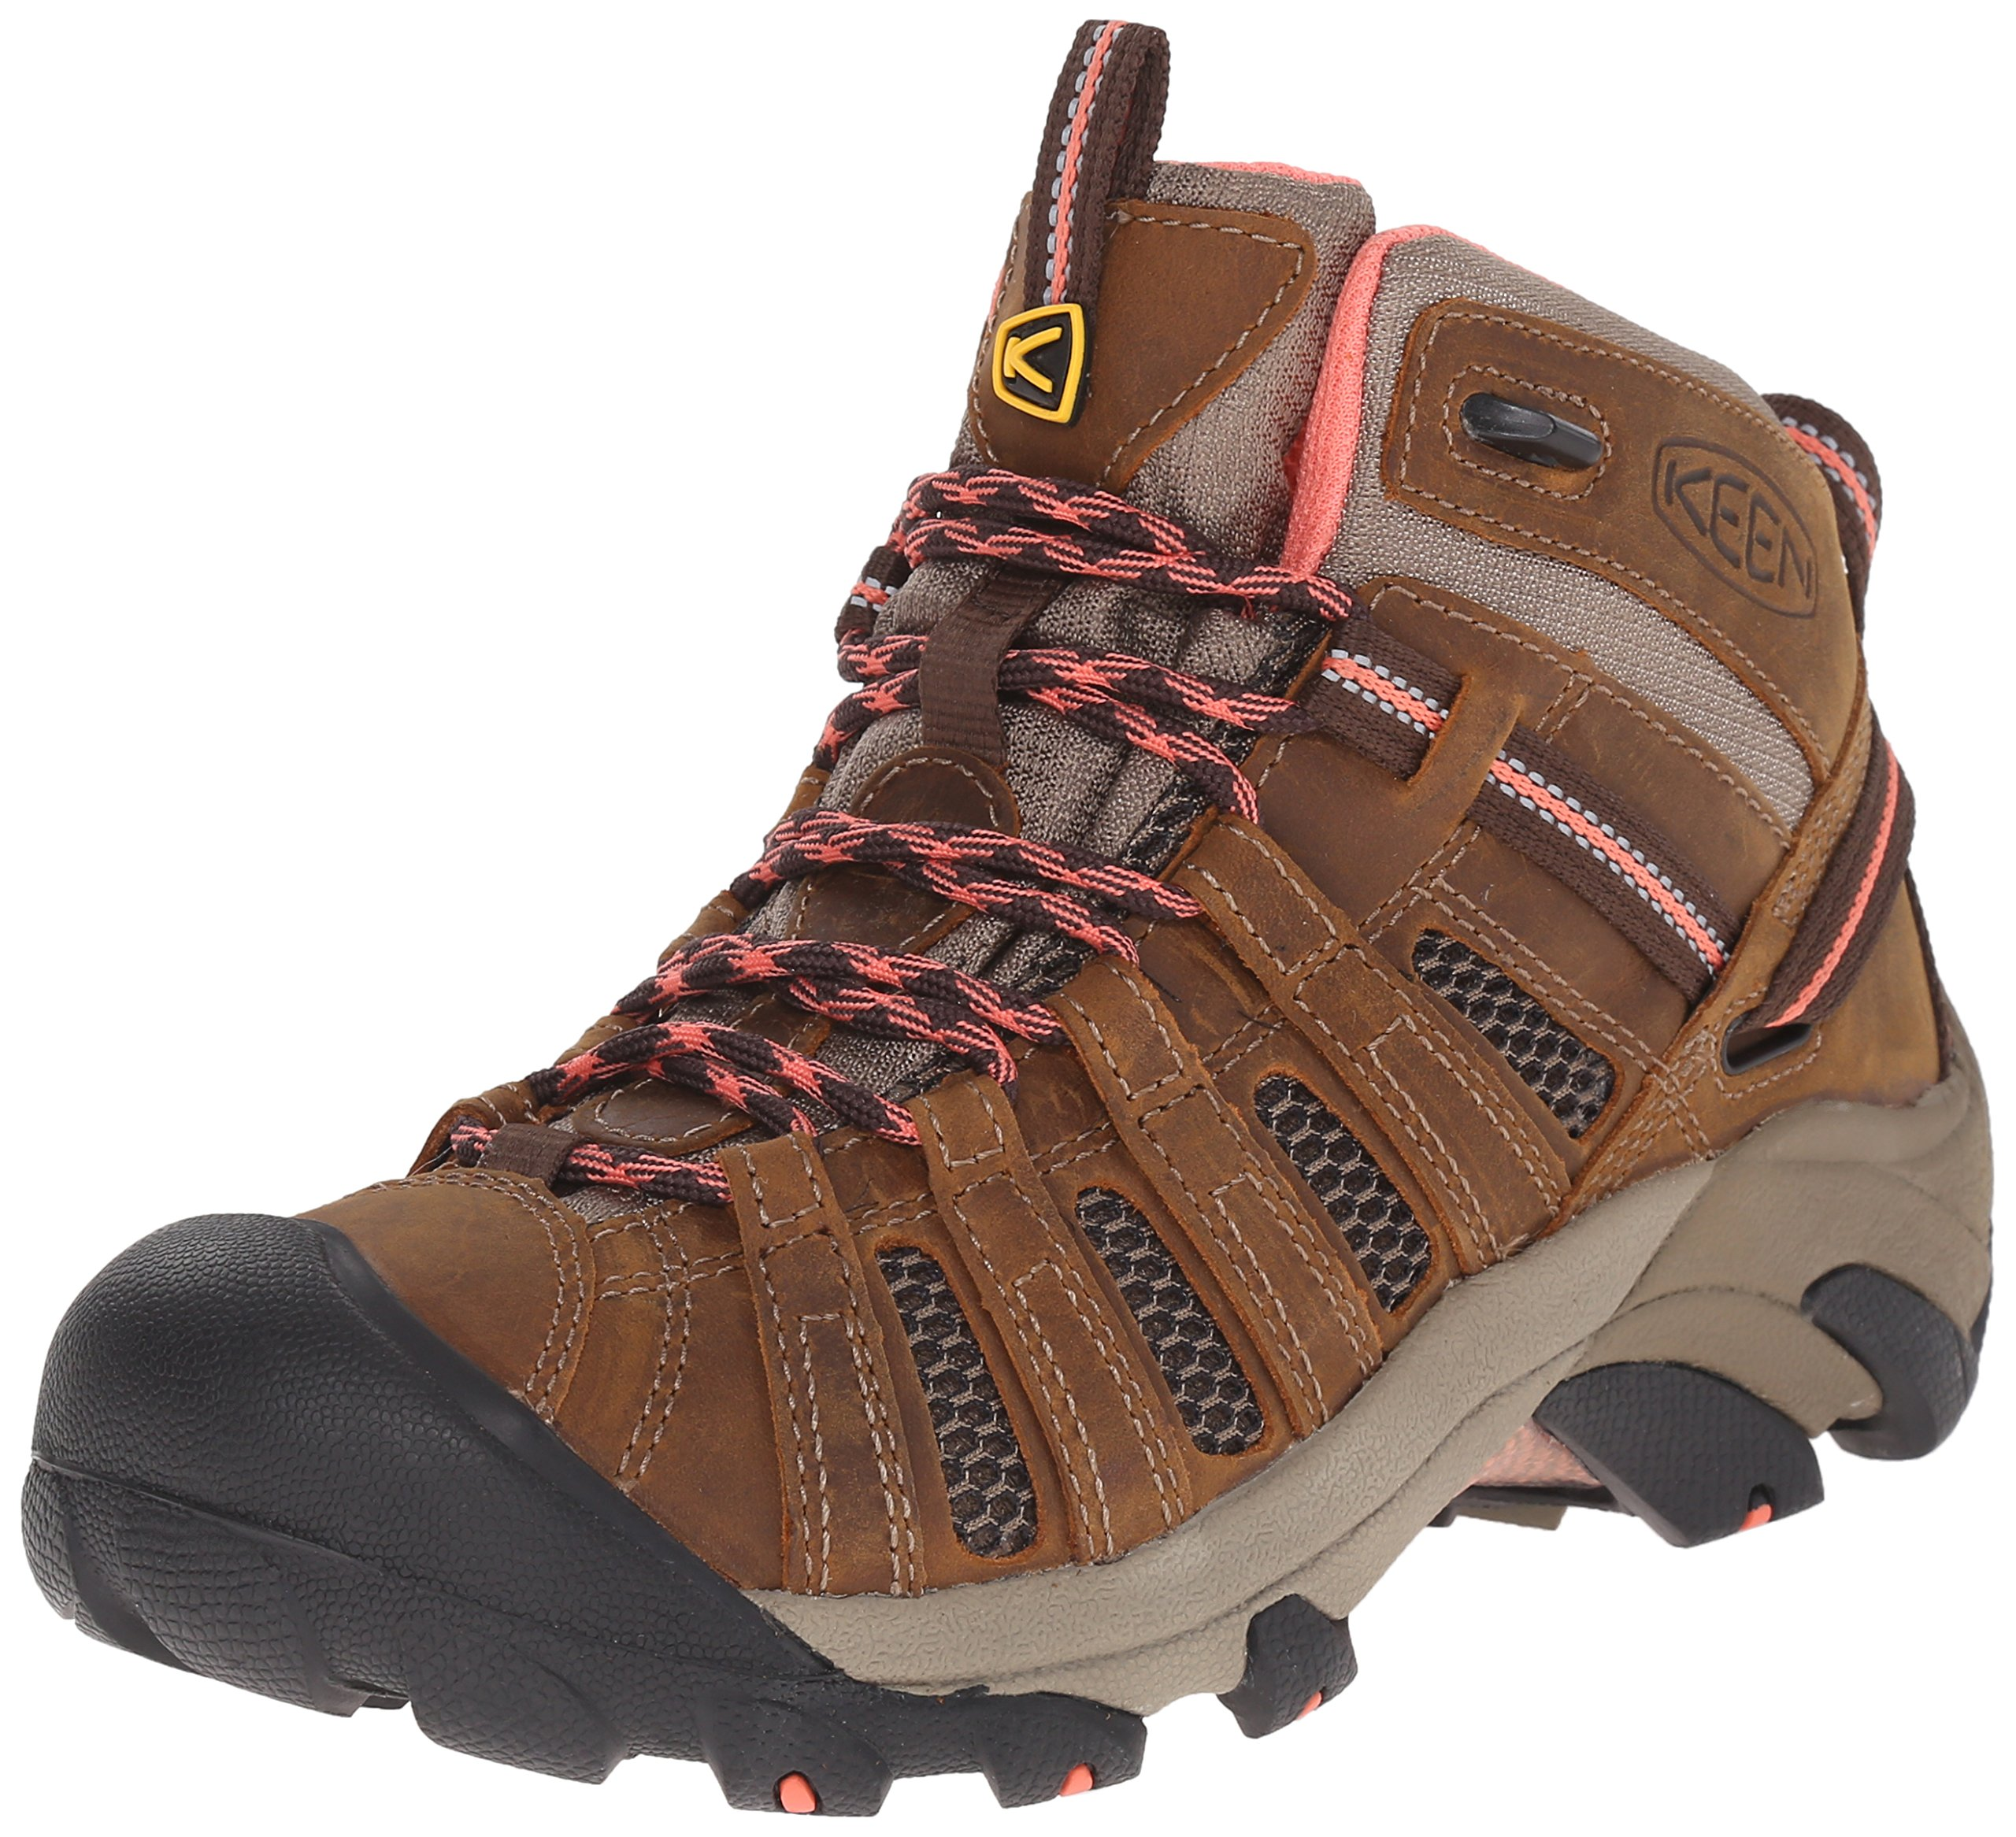 KEEN Women's Voyageur Mid Boot, Cascade Brown/Fusion Coral, 5 M US